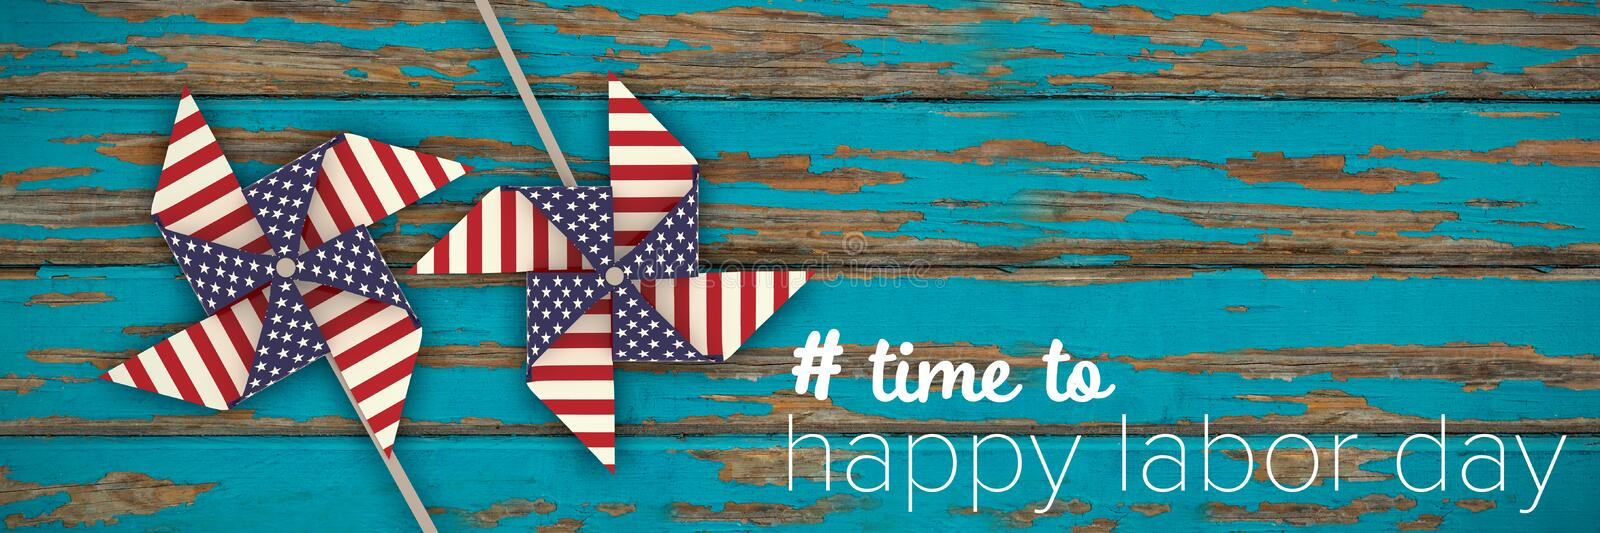 Composite image of digital composite image of time to happy labor day text vector illustration